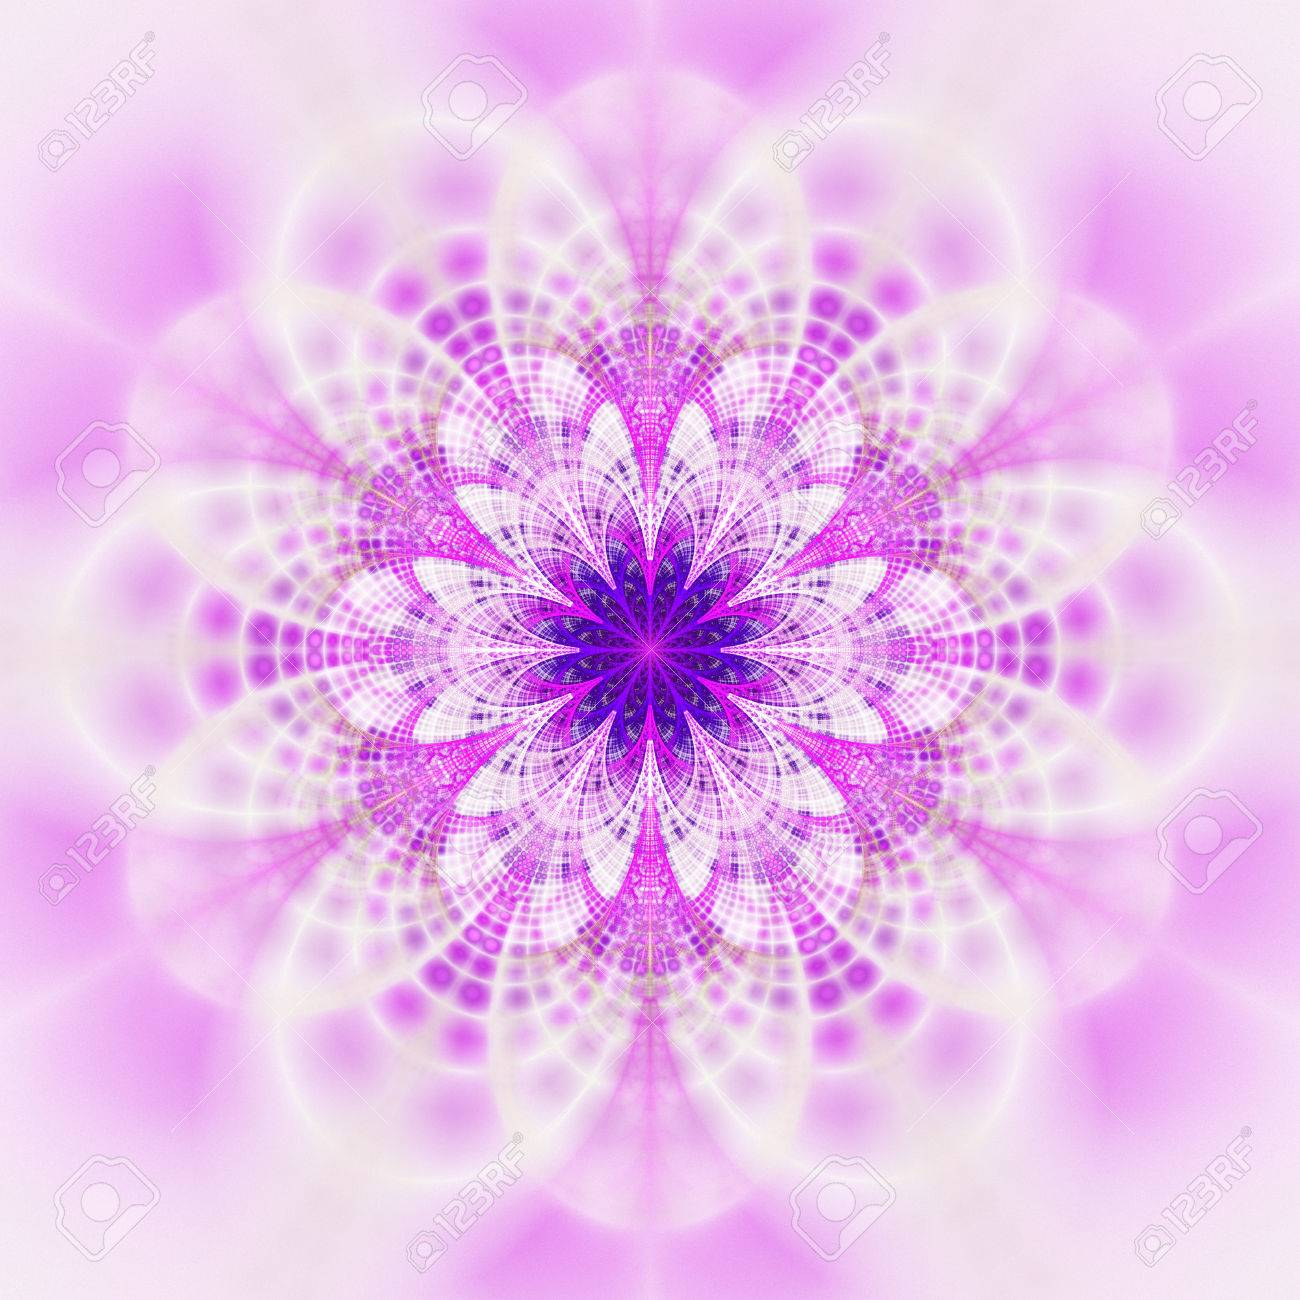 60599609 abstract flower mandala on white background symmetrical pattern in blue purple and pink colors fanta